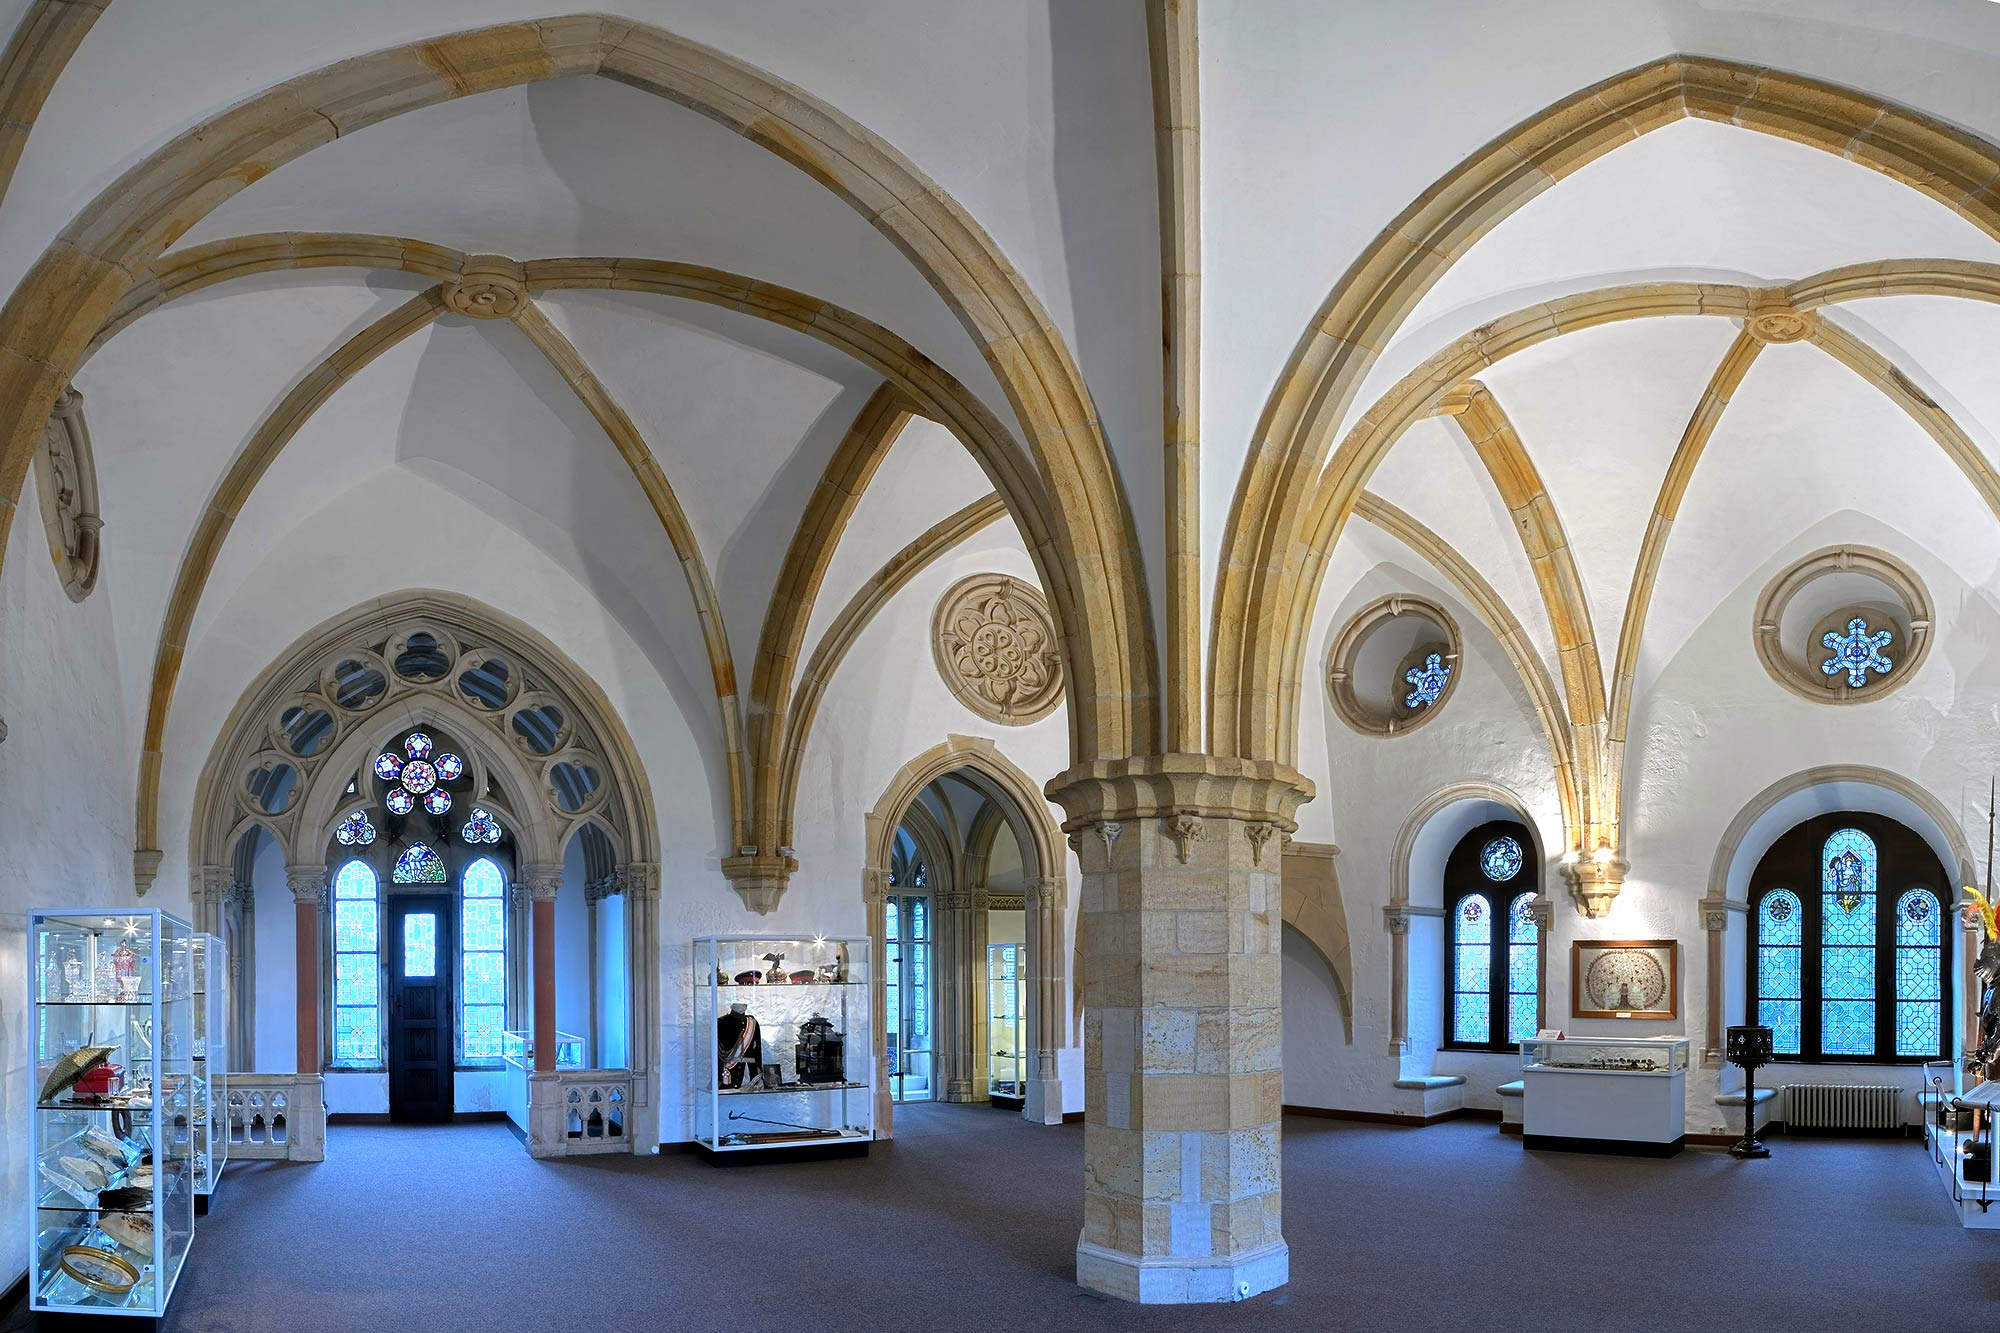 The refectory of Bentheim Castle © burgbentheim.de